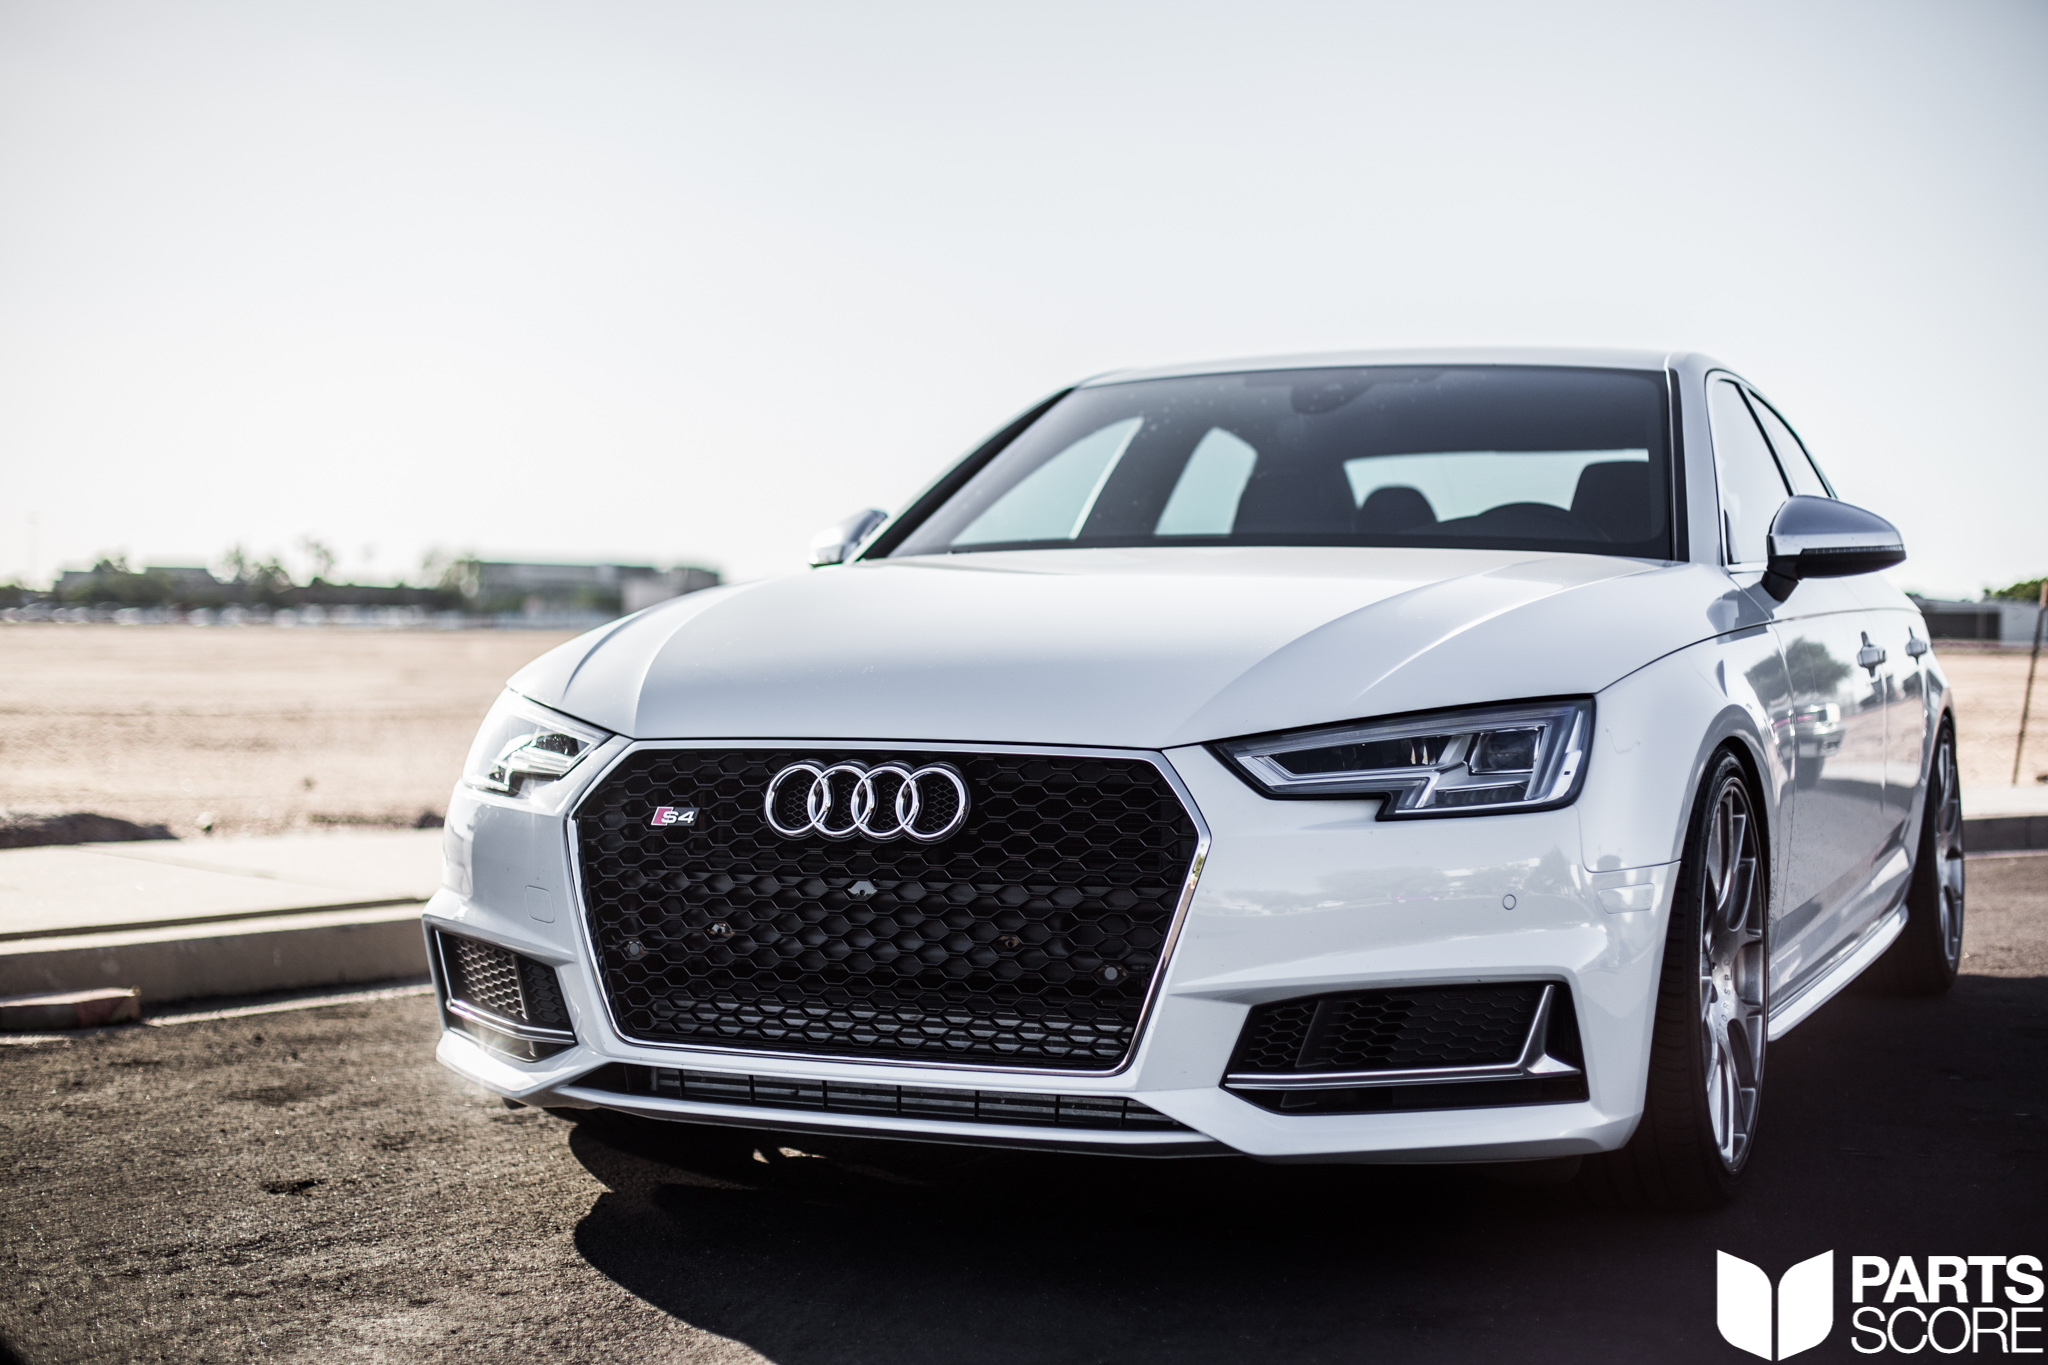 arizona, Audi, audi b9 s4, audi b9 s5, audi has kit, audi performance, audi s4, b9 a4 grill, b9 a4 rs grill, b9 a5 grill, b9 a5 rs grill, b9 audi mods, b9 h and r springs, b9 h r coilovers, b9 h&r springs, b9 modifications, b9 performance, b9 s4, b9 s4 034, b9 s4 034 motorsports, b9 s4 apr, b9 s4 awe tuning, b9 s4 carbon fiber, b9 s4 downpipe, b9 s4 exhaust, b9 s4 flash, b9 s4 flash tune, b9 s4 front lip, b9 s4 giac, b9 s4 giac tune, b9 s4 grill, b9 s4 h and r coilovers, b9 s4 h r coilovers, b9 s4 h&r coilovers, b9 s4 h&r springs, b9 s4 has kit, b9 s4 intake, b9 s4 kw coilovers, b9 s4 kw has kit, b9 s4 kwv1, b9 s4 kwv2, b9 s4 kwv3, b9 s4 lip, b9 s4 milltek, b9 s4 modification, b9 s4 mods, b9 s4 navigation, b9 s4 ohlins, b9 s4 ohlins road and track, b9 s4 painted reflectors, b9 s4 performance, b9 s4 performance mods, b9 s4 power, b9 s4 spacers, b9 s4 spoiler, b9 s4 springs, b9 s4 tune, b9 s5, b9 s5 apr, b9 s5 awe tuning, b9 s5 carbon fiber, b9 s5 downpipe, b9 s5 exhaust, b9 s5 front lip, b9 s5 giac, b9 s5 grill, b9 s5 h&r springs, b9 s5 has kit, b9 s5 intake, b9 s5 kw has kit, b9 s5 milltek, b9 s5 mods, b9 s5 painted reflectors, b9 s5 performance, b9 s5 power, b9 s5 springs, giac flash, giac tune, giactuned, glacier white, h and r coilovers b9, has kit, height adjustable spring kit, kw coilovers b9, magma red, mesh, mesh grill, parts score, rs grill, rs4 grill, rs4 s4 grill, s4 b9 cts turbo, scottsdale